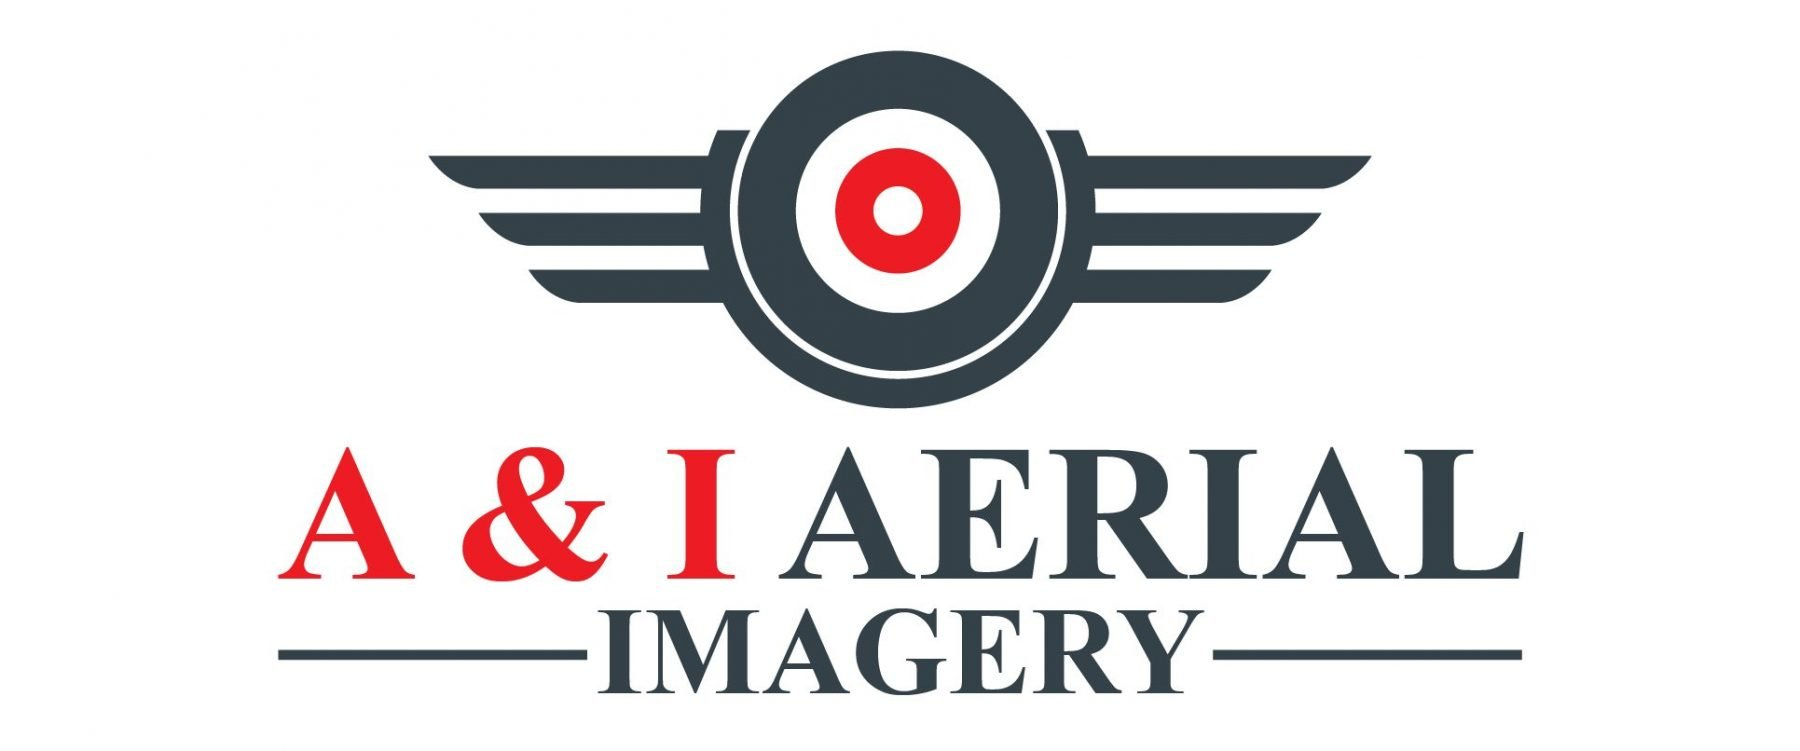 A&I Aerial Imagery